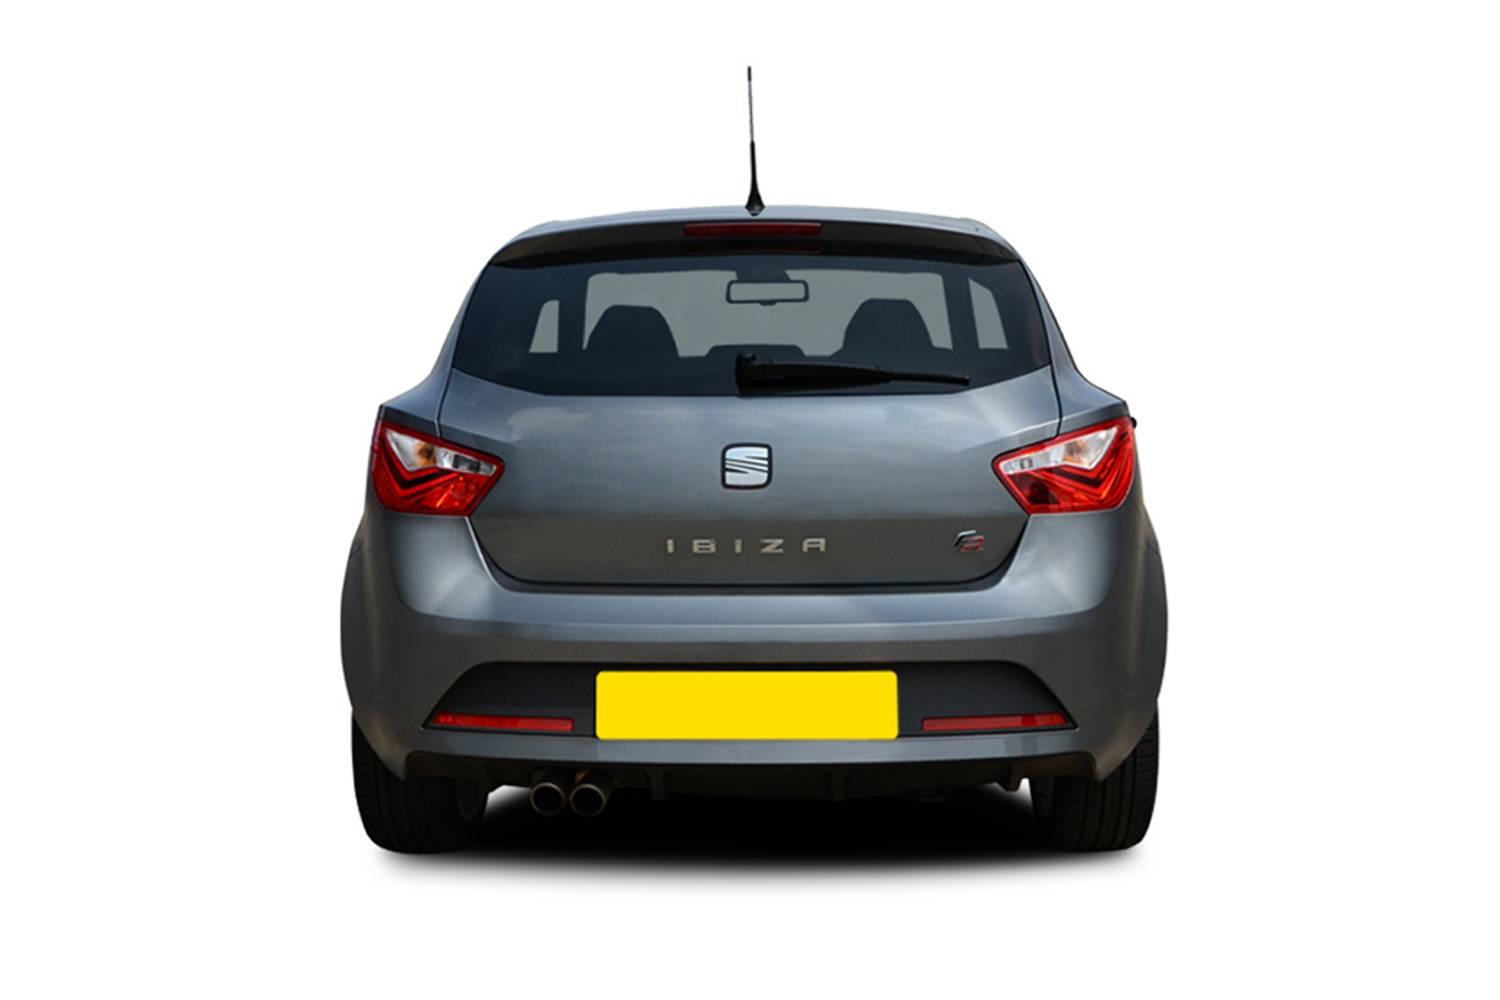 new seat ibiza sport coupe 1 8 tsi cupra black 3 door 2016 for sale. Black Bedroom Furniture Sets. Home Design Ideas